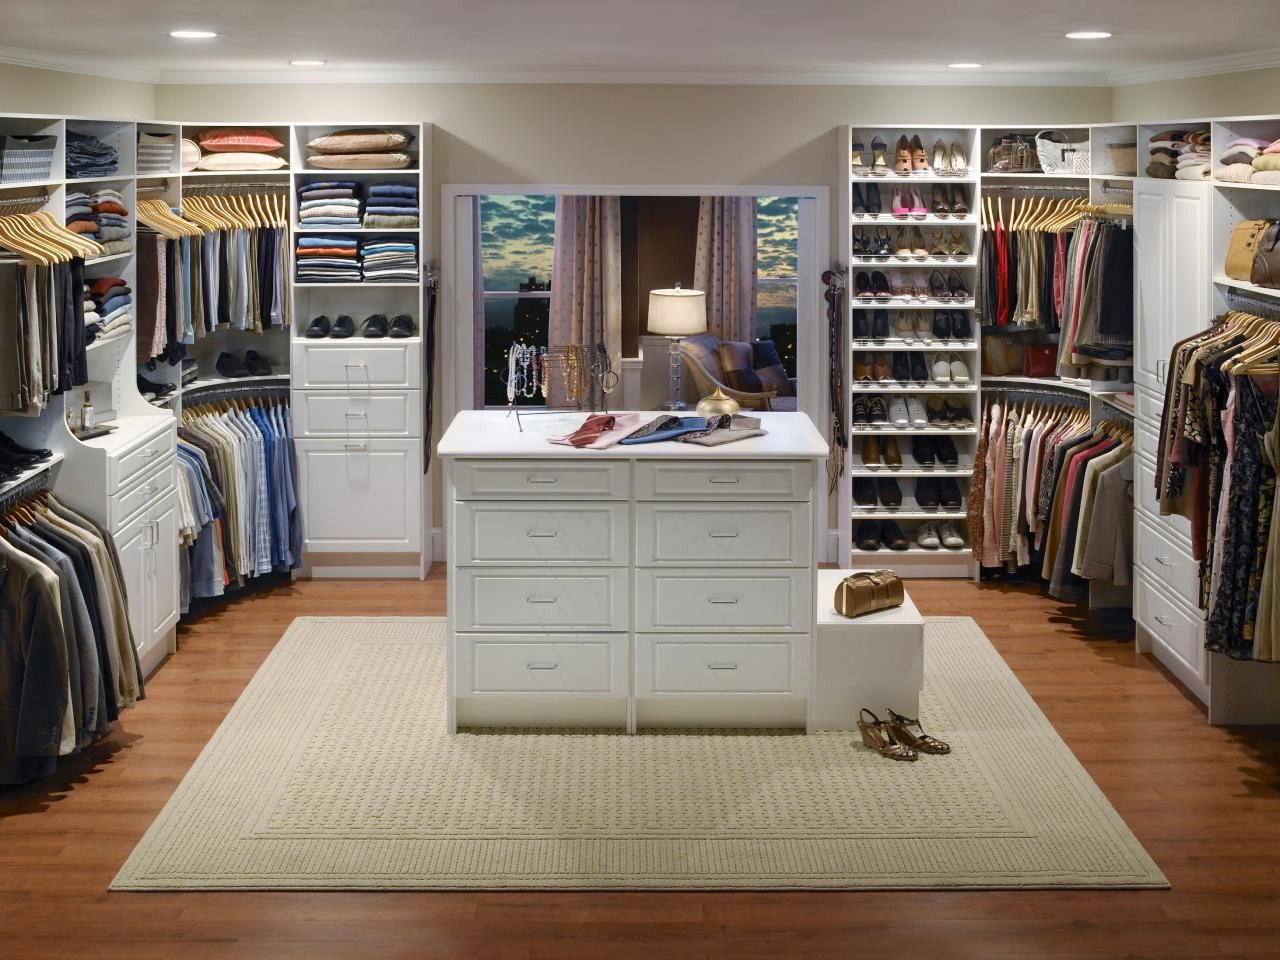 Simple small closet organization tips smart home decorating ideas - What You Should Know About Closets